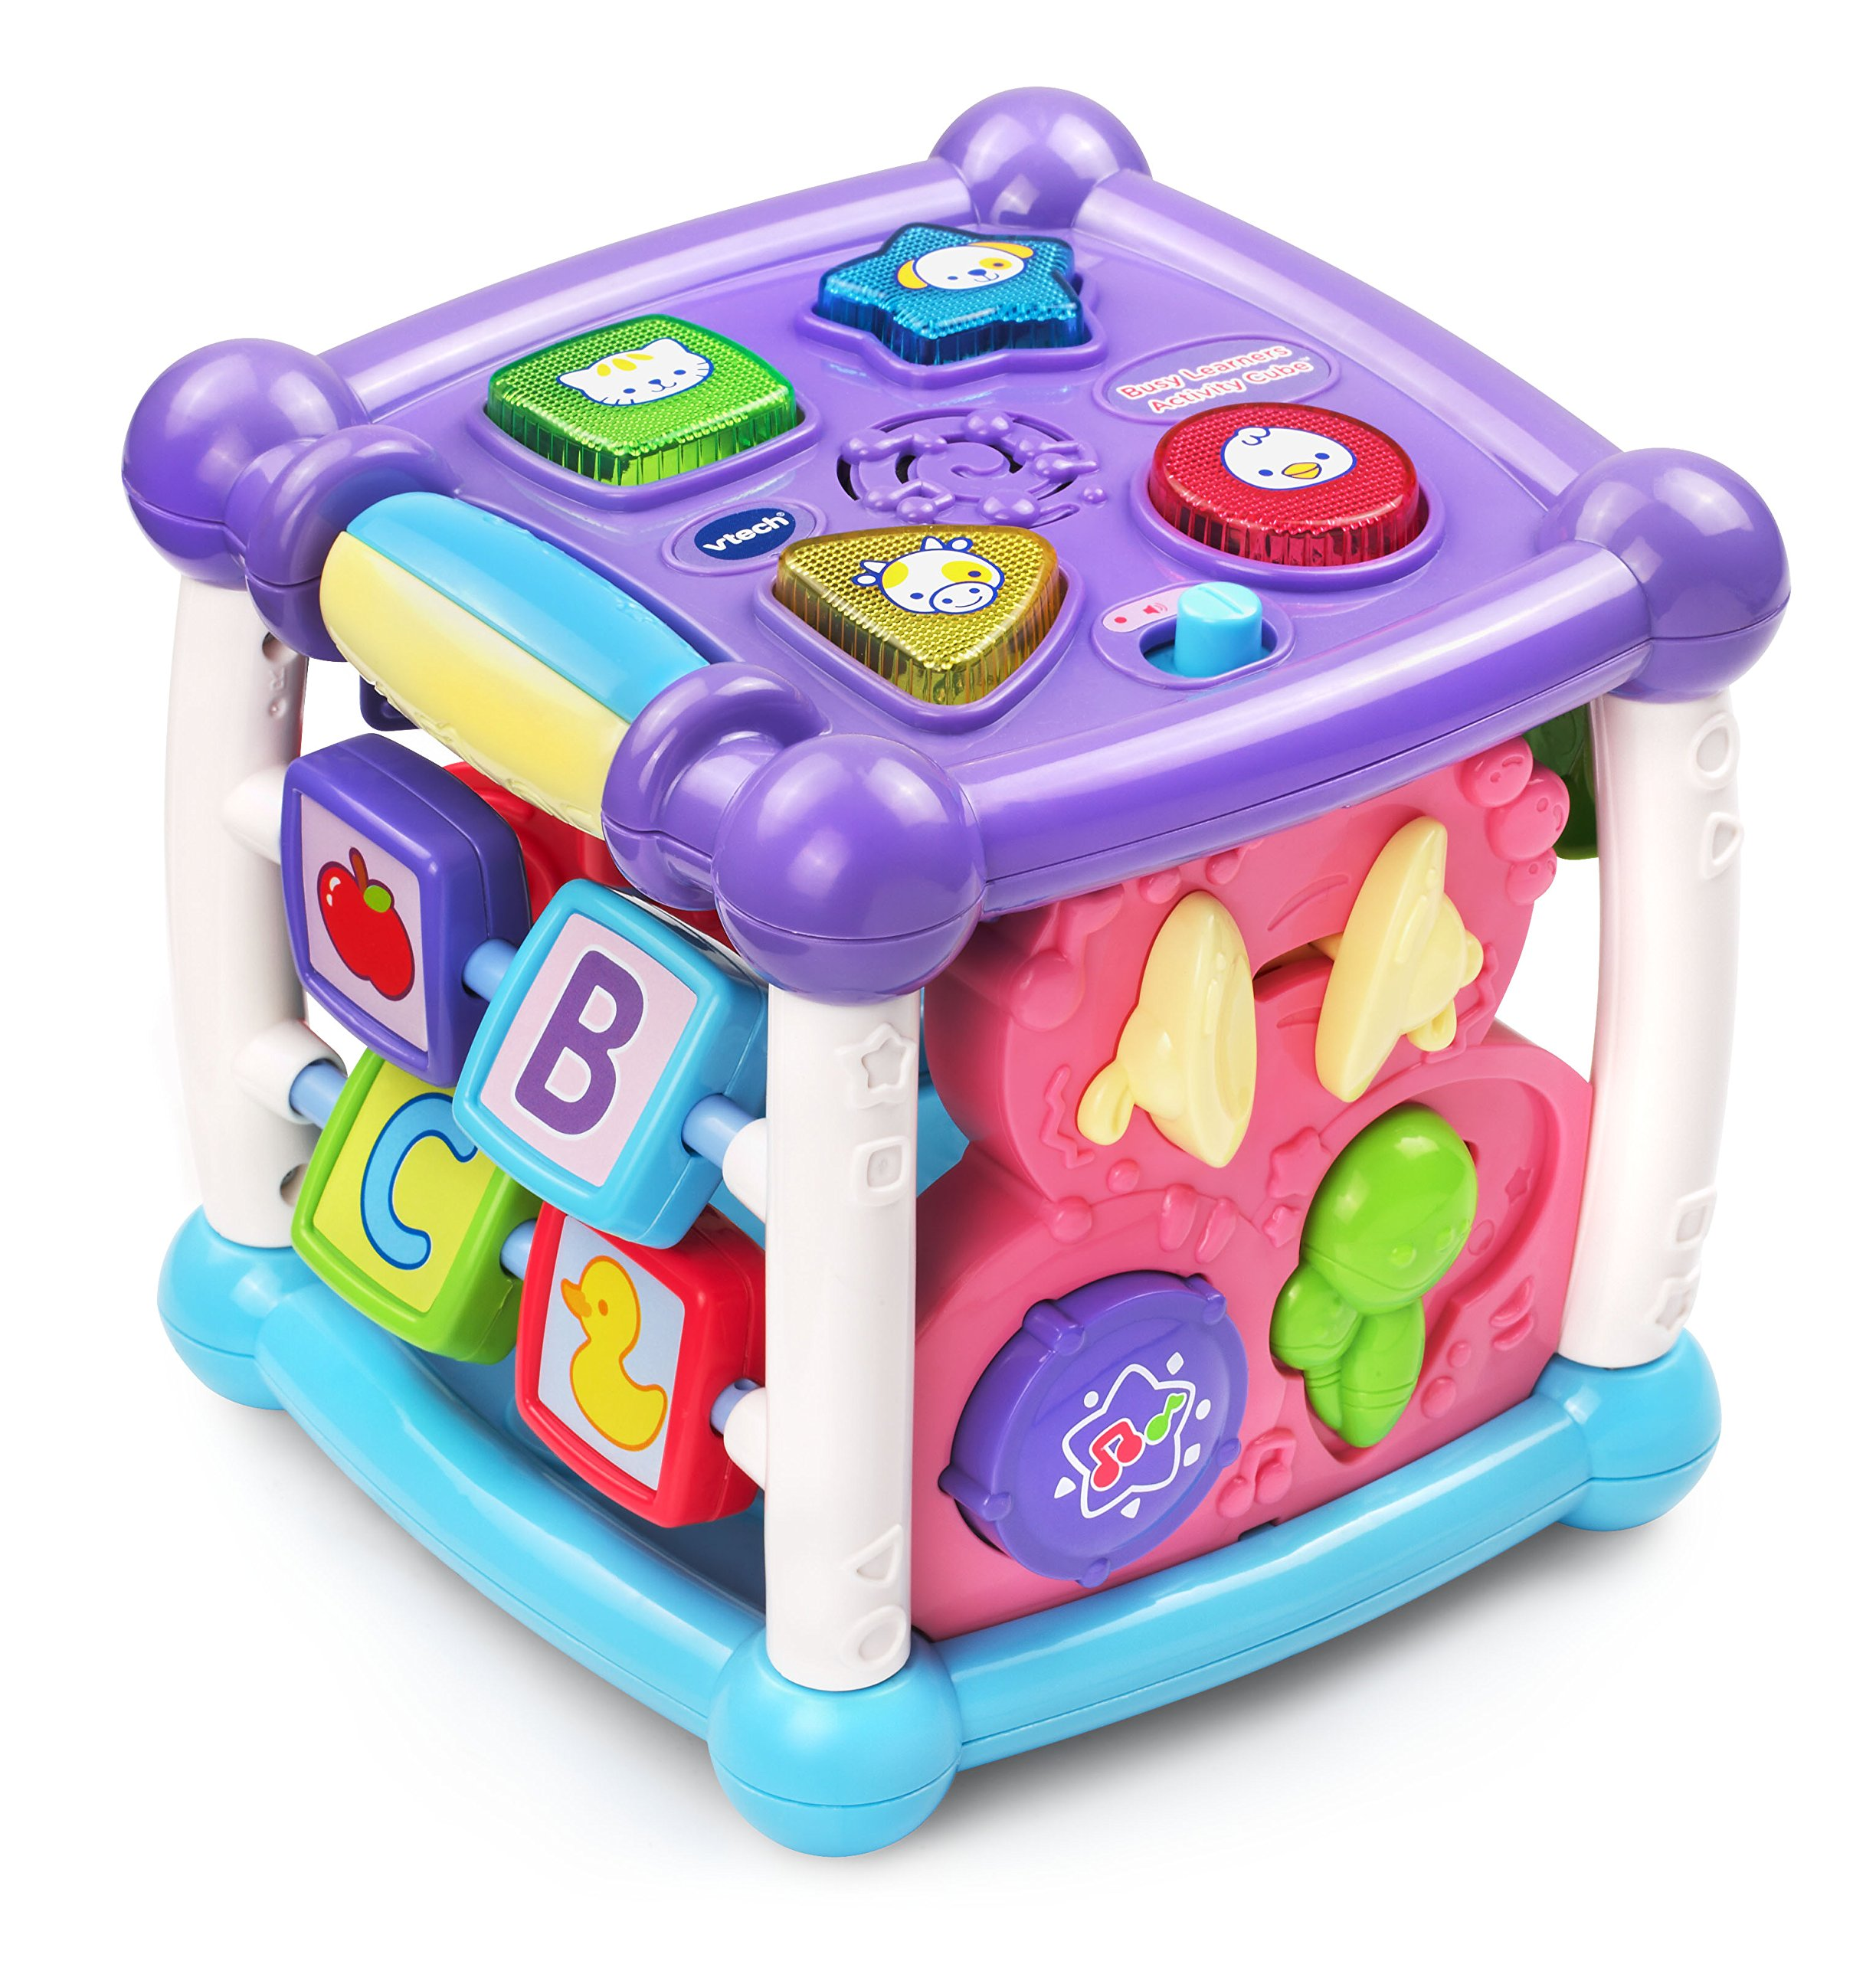 VTech Busy Learners Activity Cube, Purple, Great Gift for Kids, Toddlers, Toy for Boys and Girls, Ages Infant, 1, 2, 3